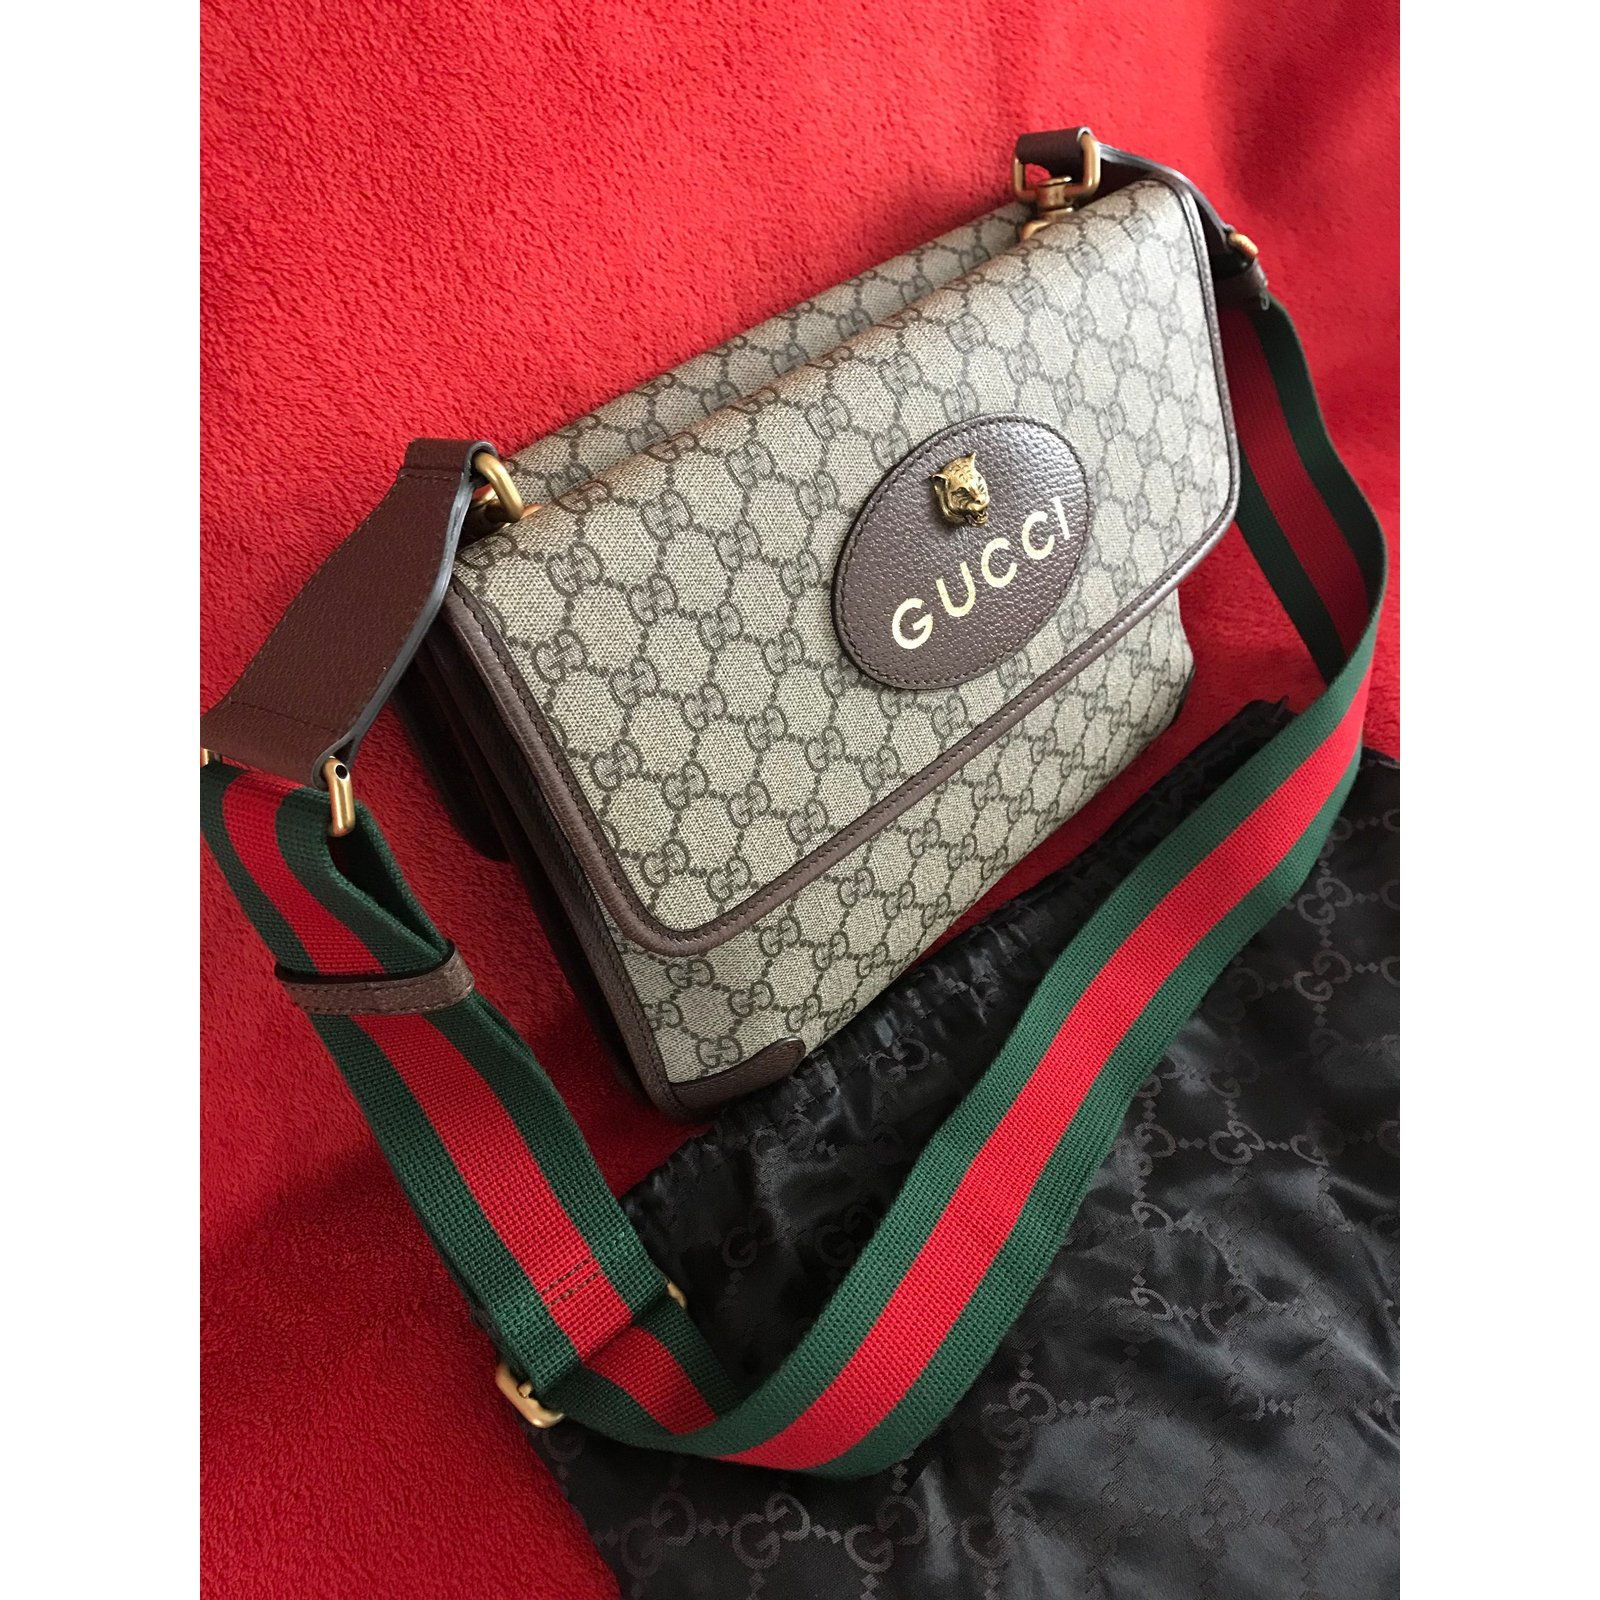 4021b74d471b Facebook · Pin This. Gucci GG Supreme messenger bag -Style ?495654 Bags  Briefcases Cloth Multiple colors ref.